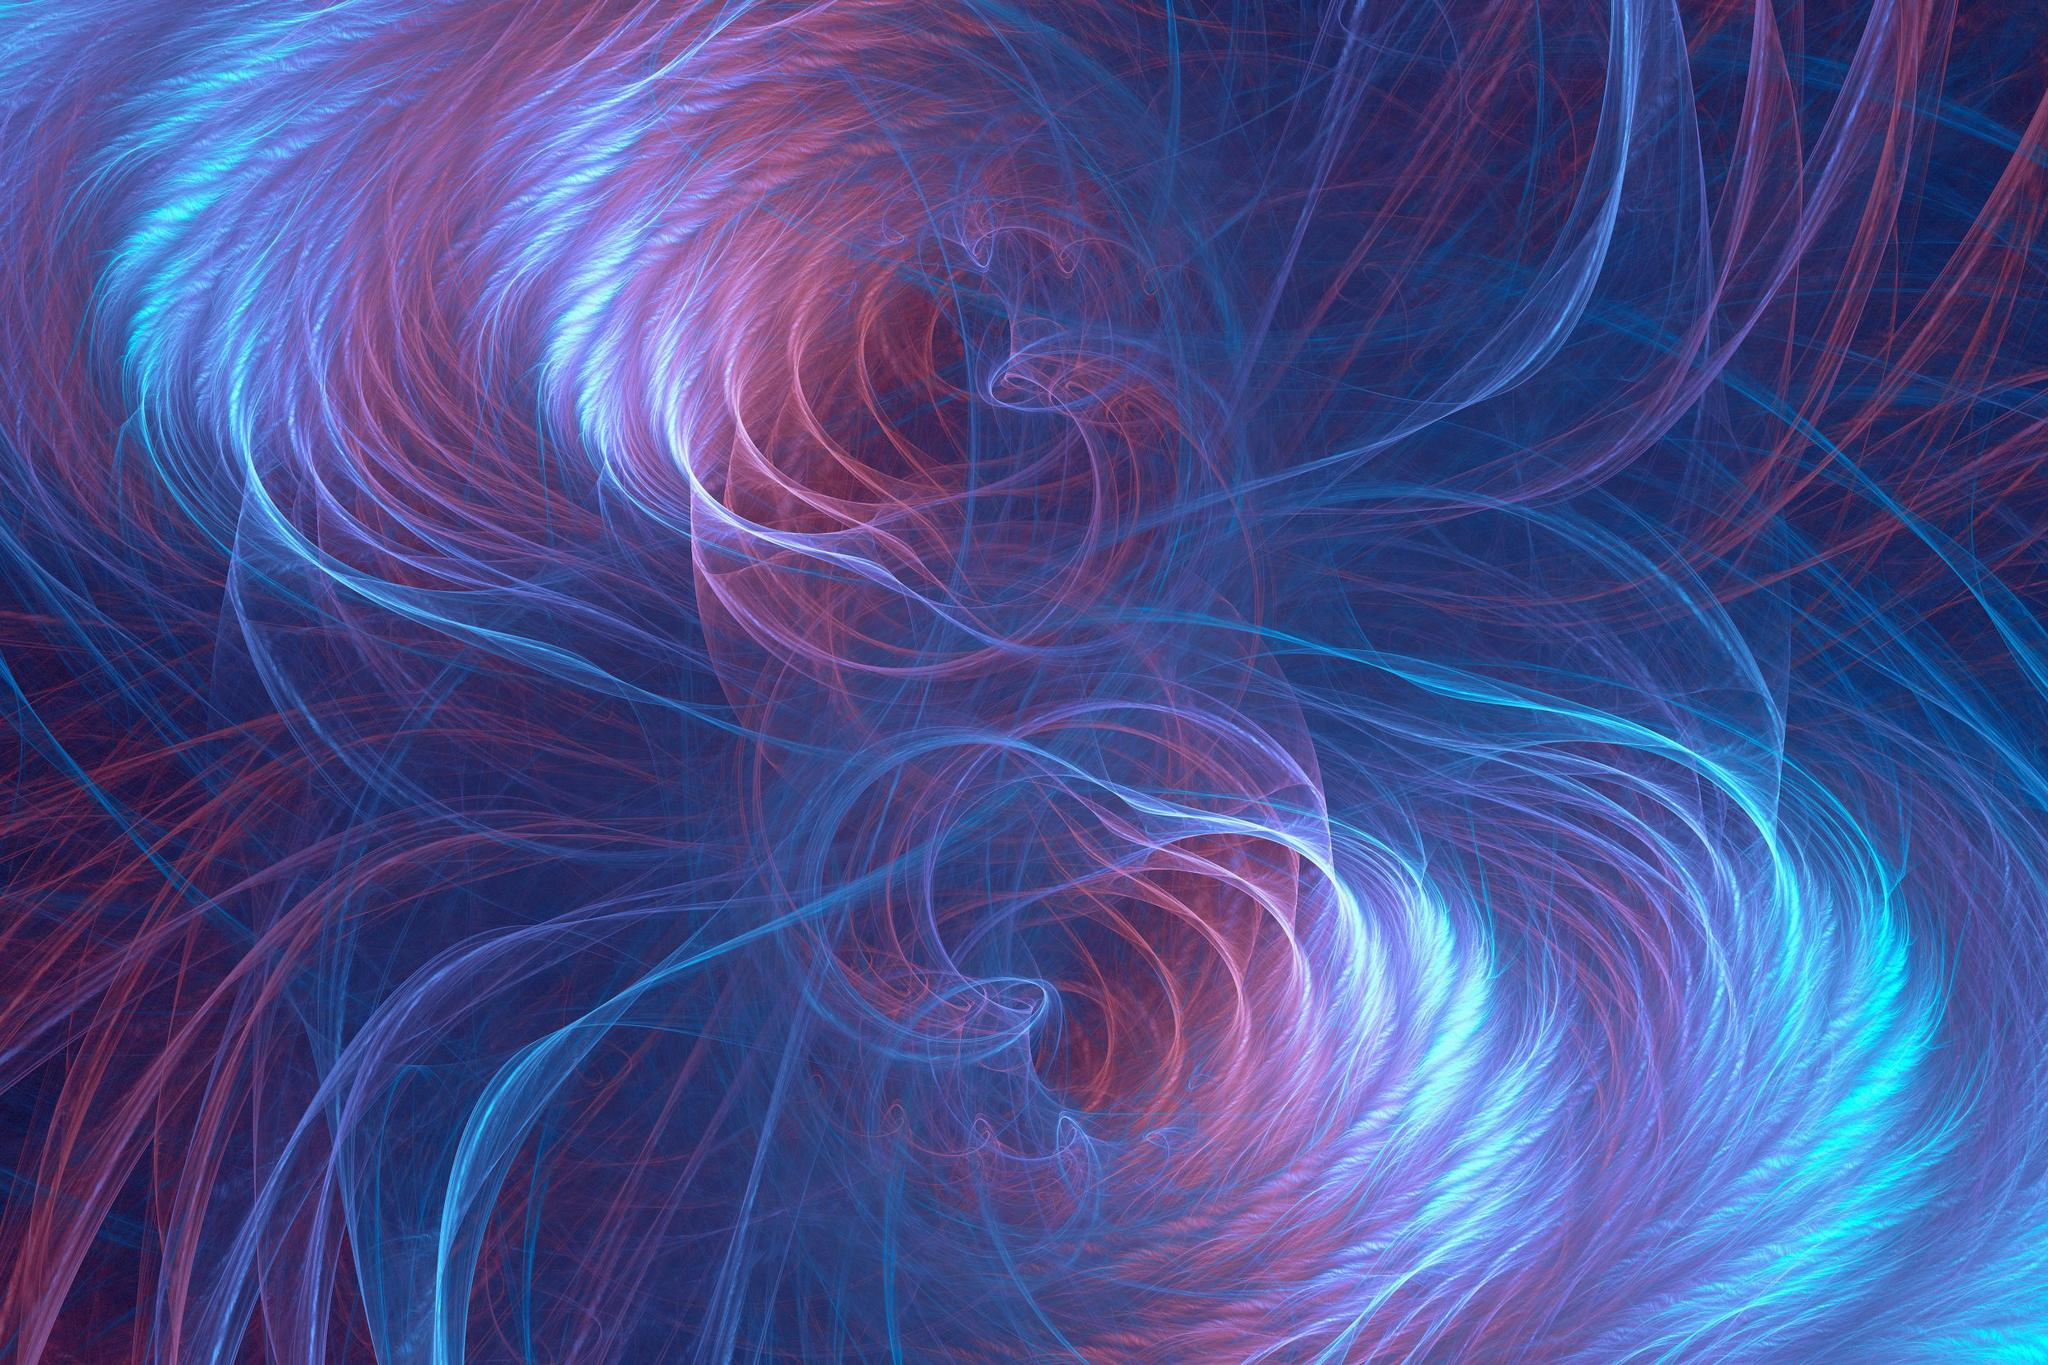 Quantum entanglement (the idea that pairs of particles separated even across great distances are inextricably linked) is key to developing tomorrow's secure communications channels.